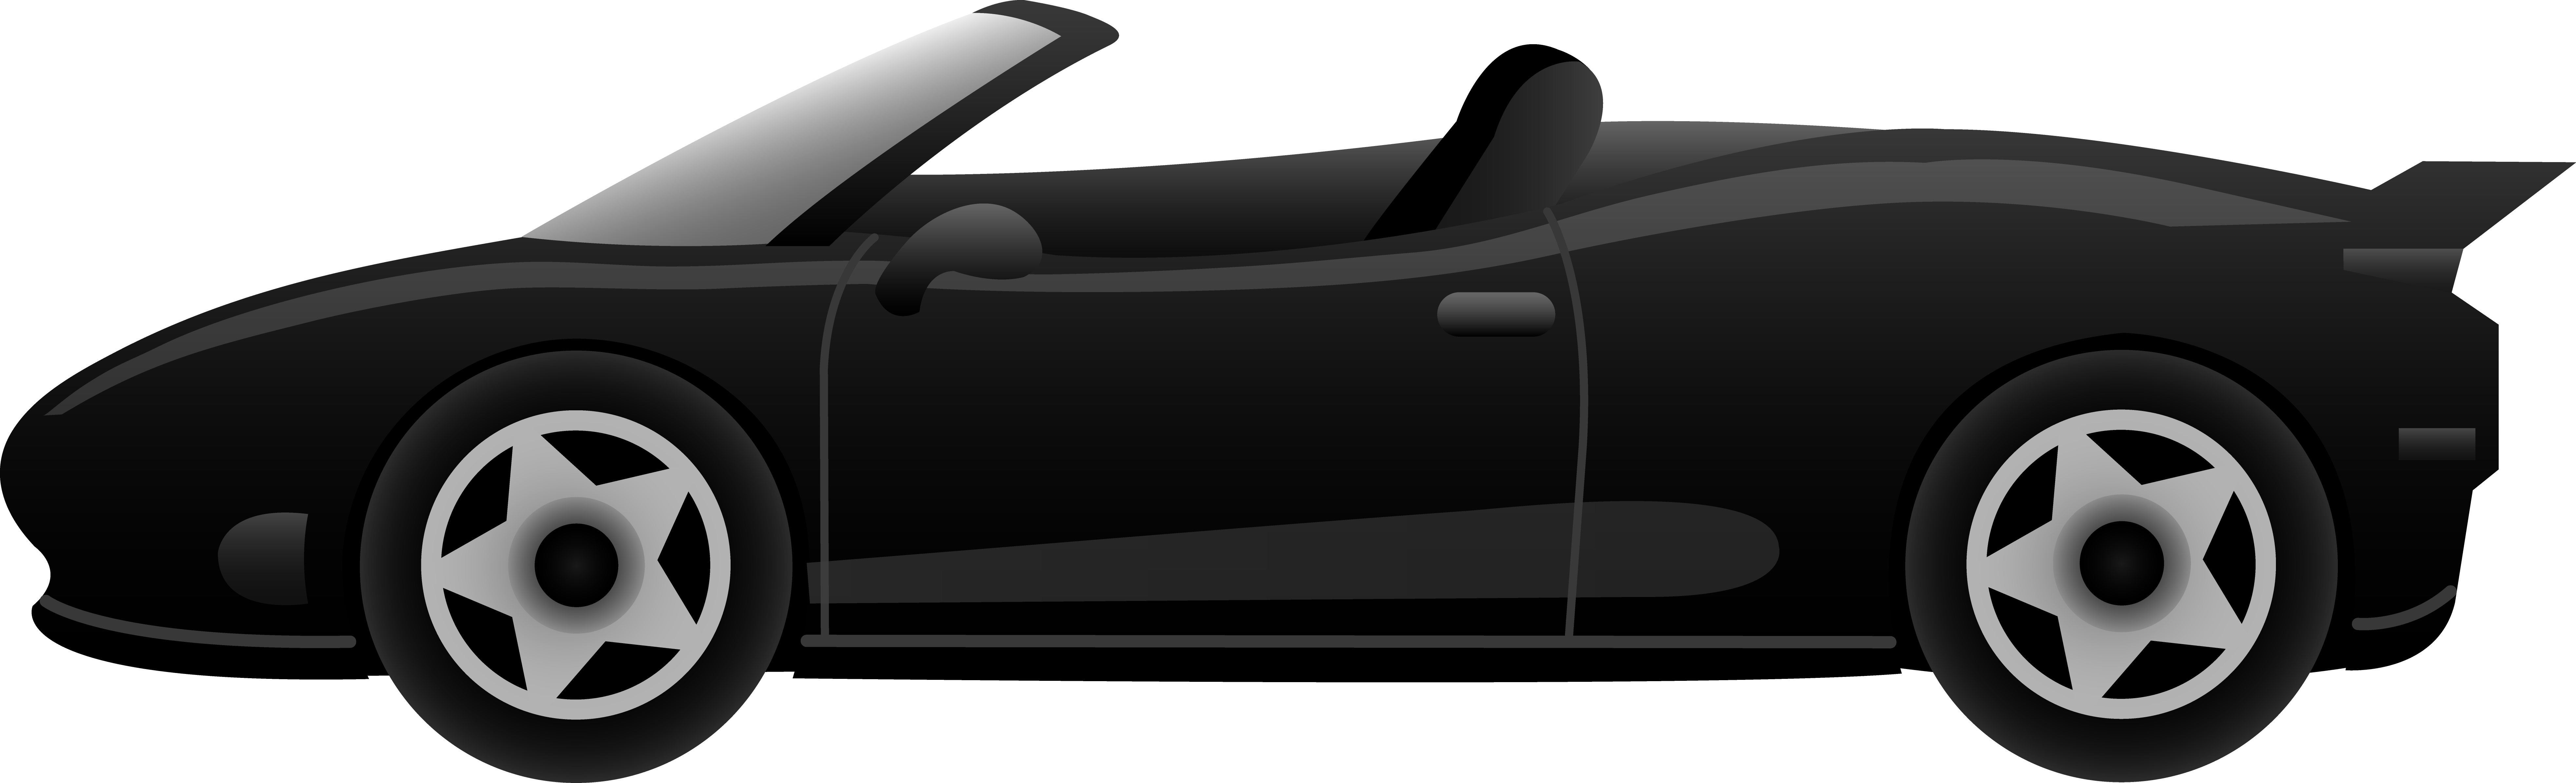 black sports car clipart - photo #8